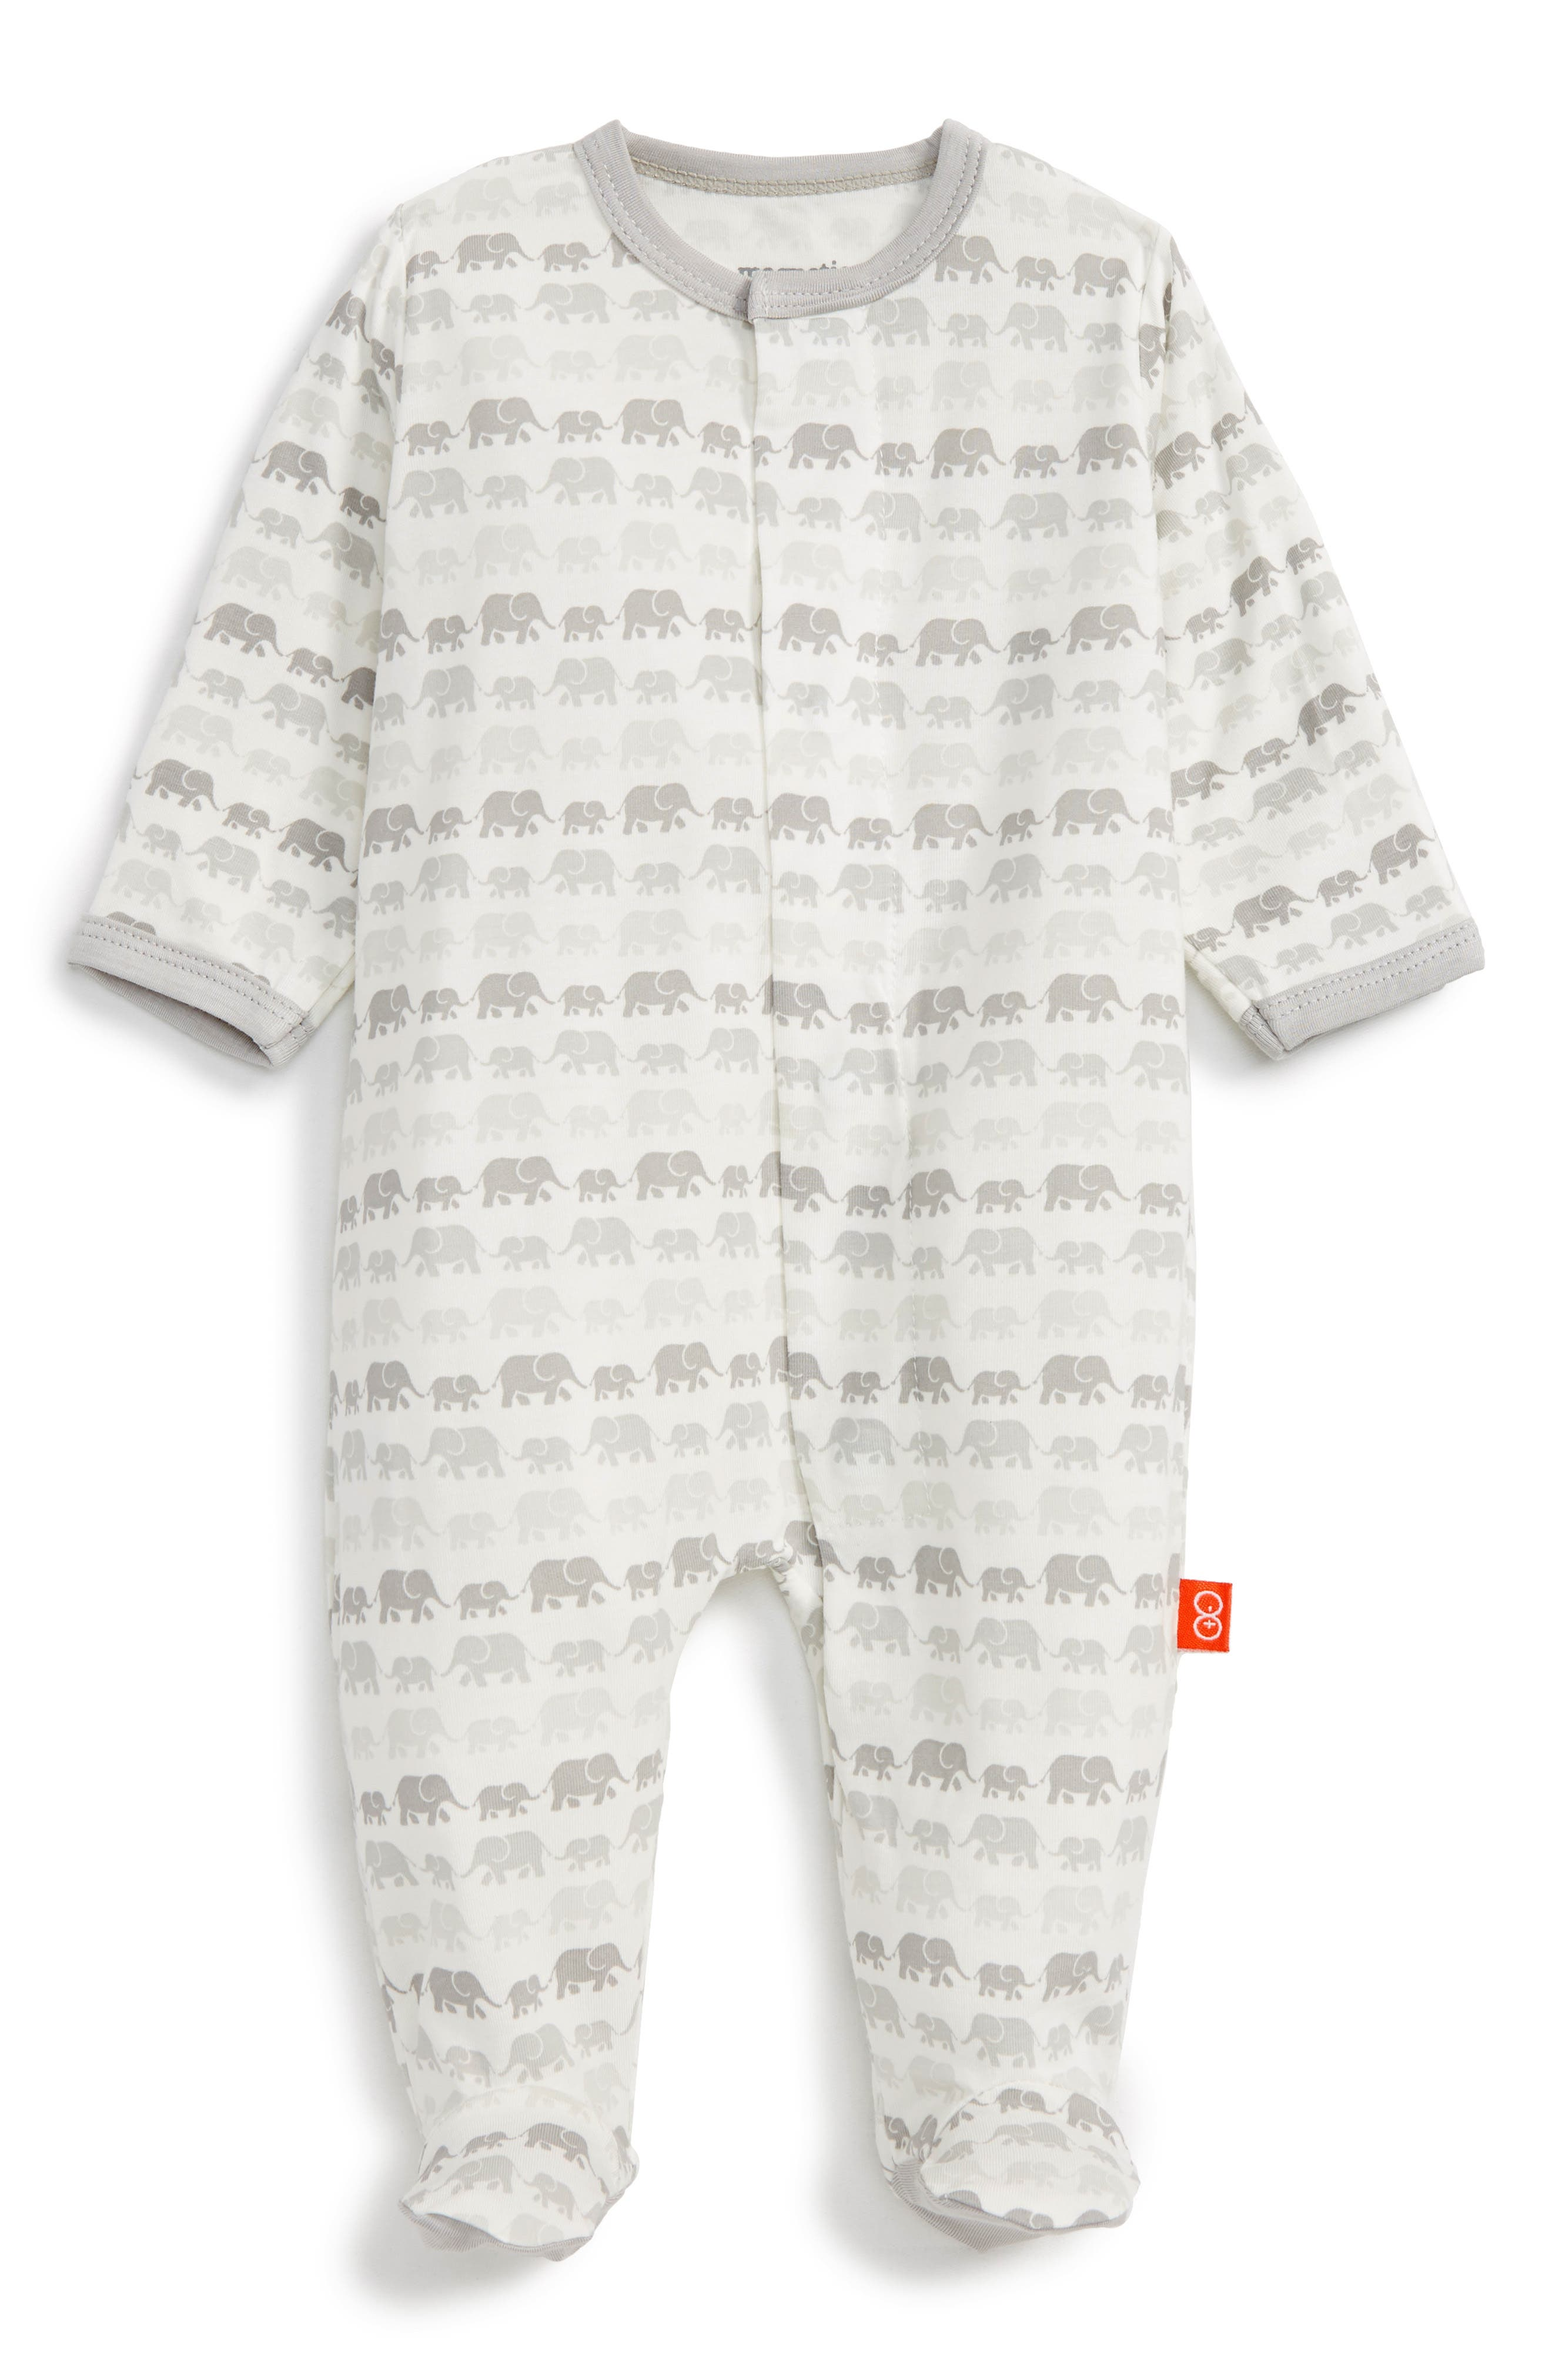 Fitted One-Piece Pajamas,                             Main thumbnail 1, color,                             Grey Elephants